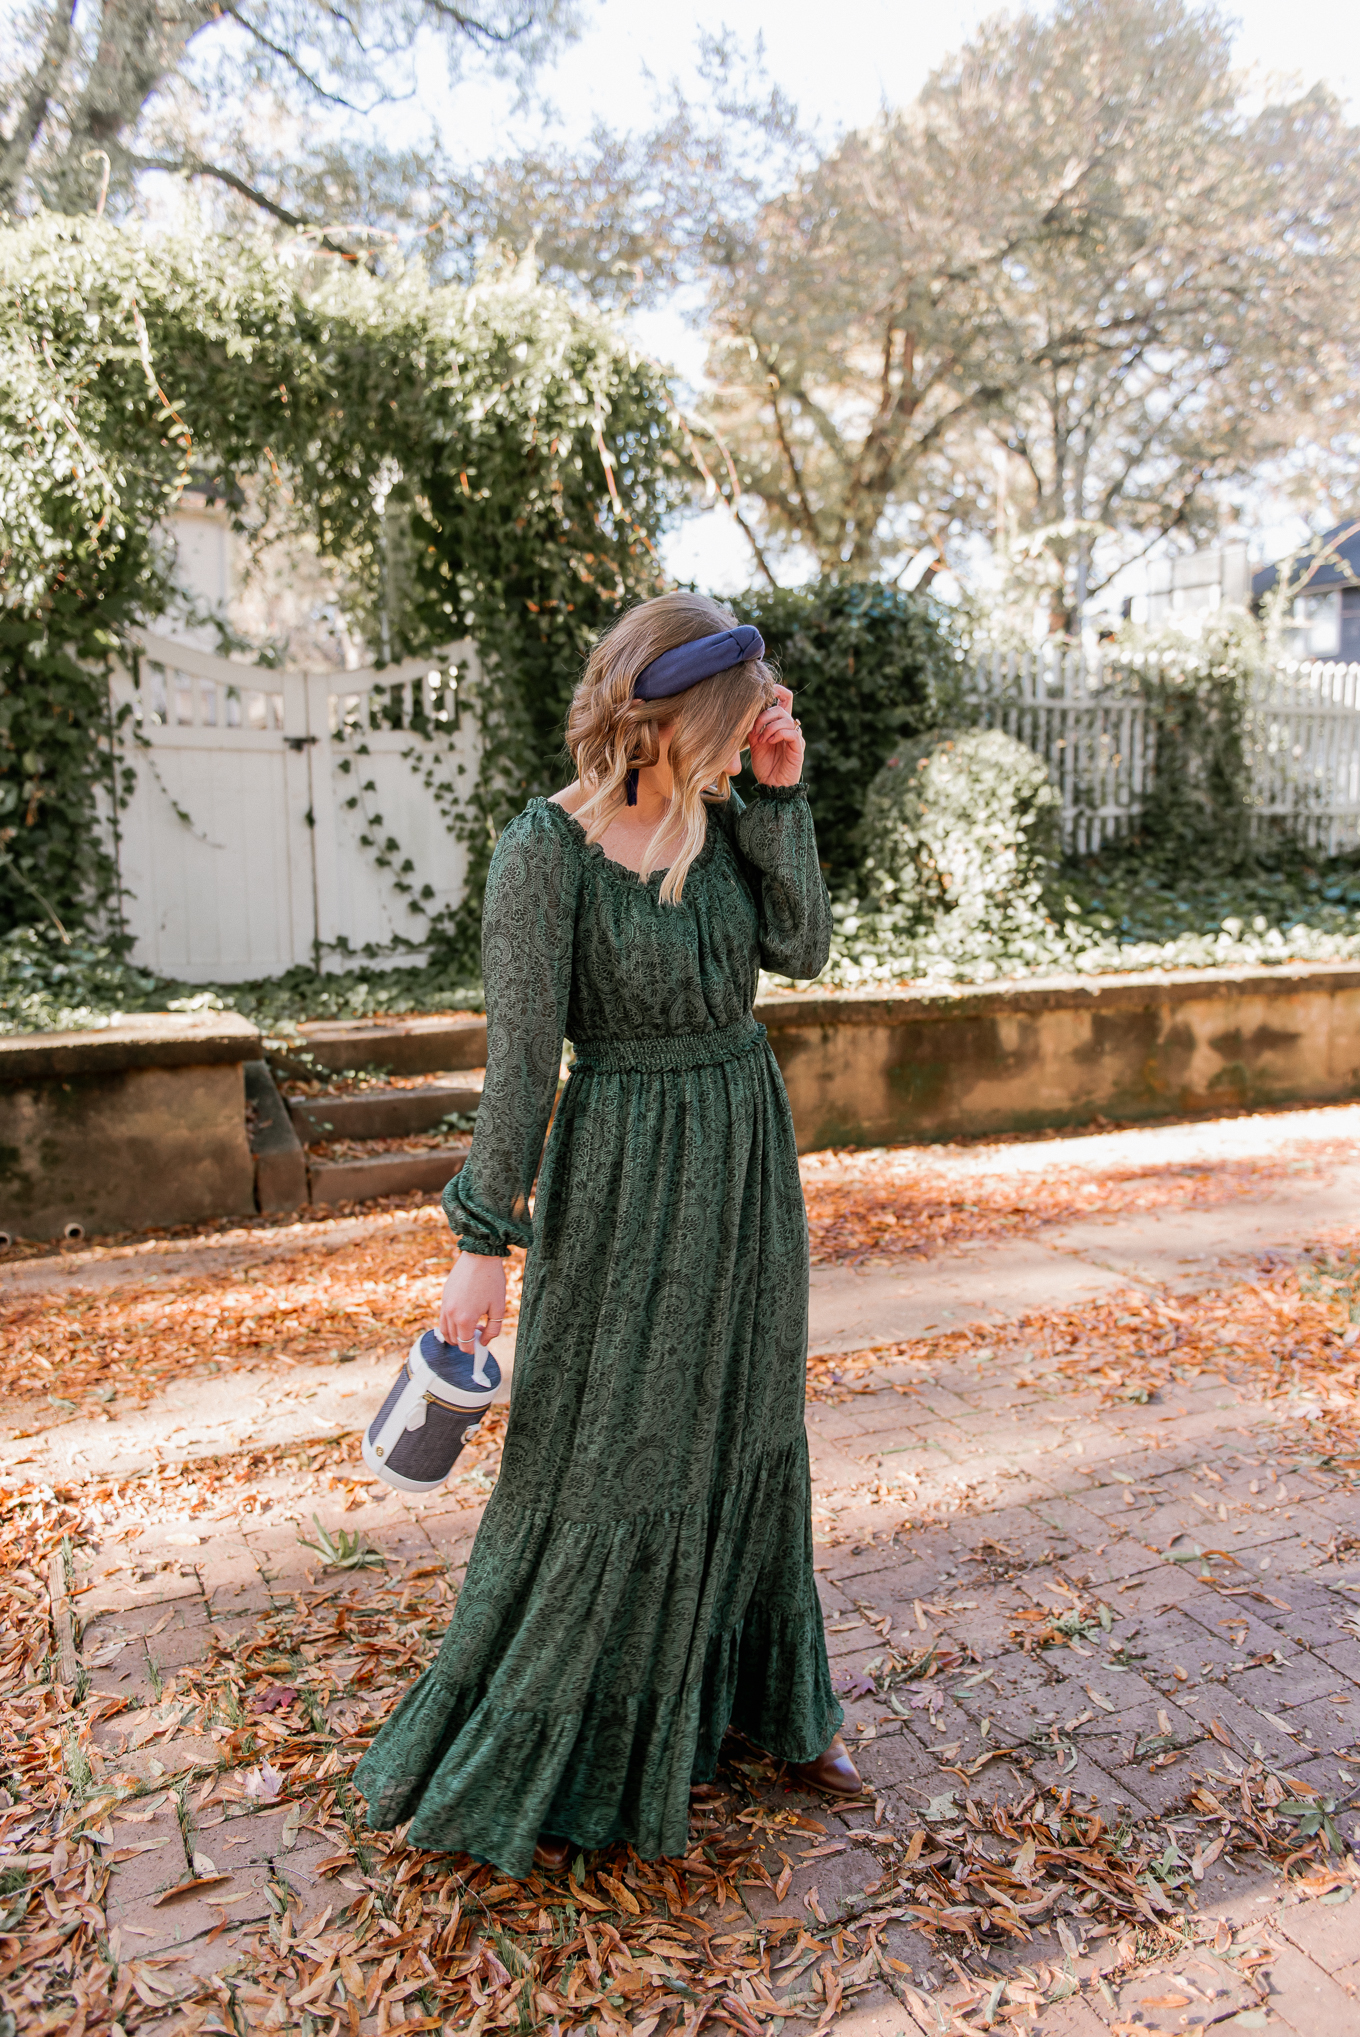 How to Style a Holiday Dress in a Fresh Way | Feminine Holiday Dresses | Louella Reese